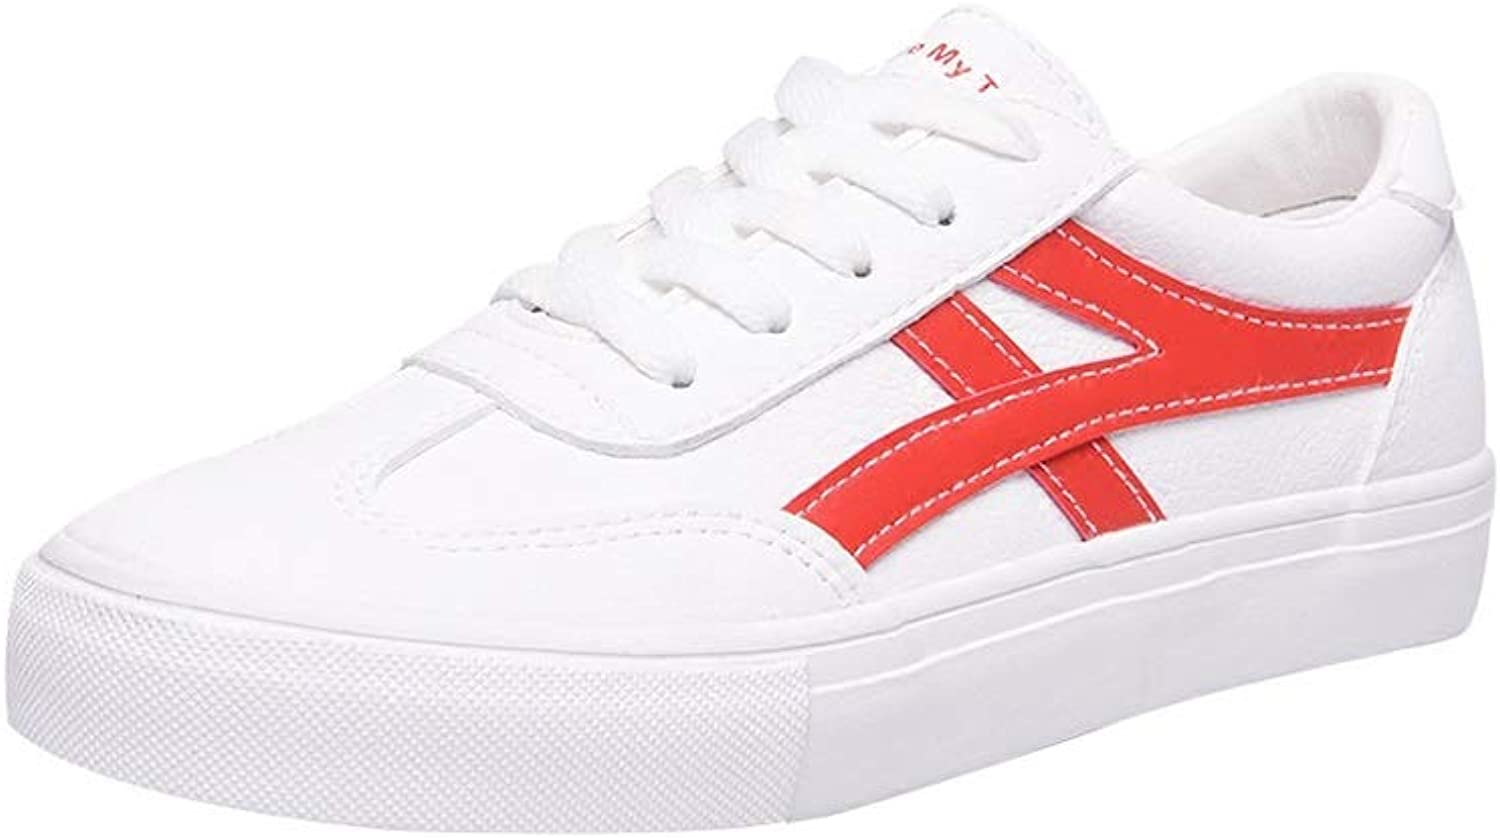 WANGFANG Sandals Women's White shoes, Spring and Summer Personality Versatile Leather White shoes Platform Sneakers (color   Red, Size   US7 EU38 UK5 MX4.5 CN38)